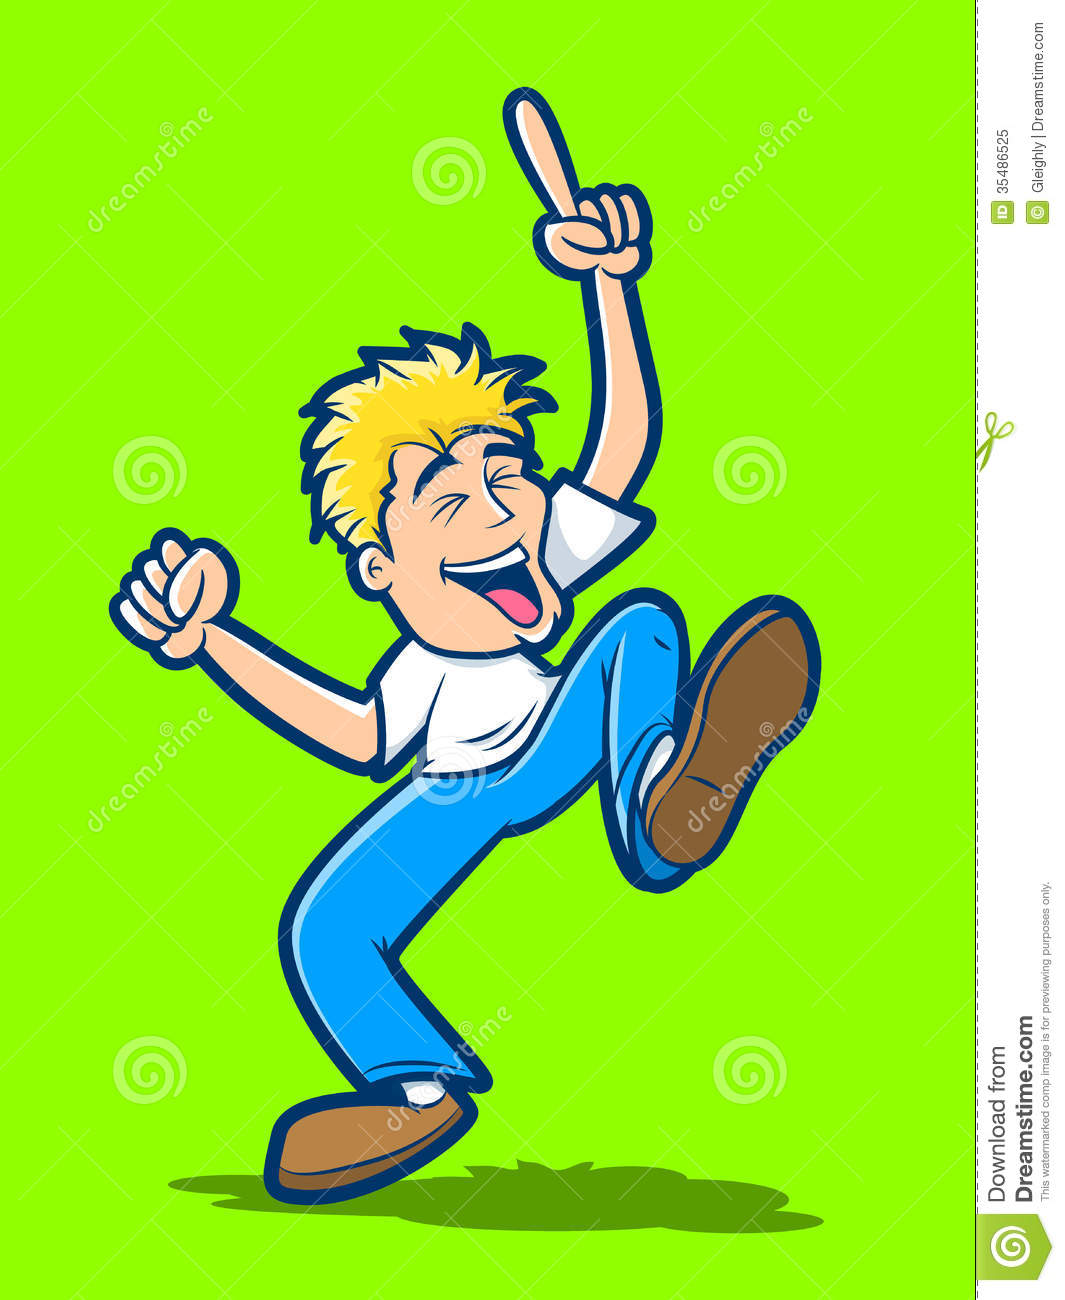 happy-dancing-man-cartoon-having-good-time-35486525.jpg